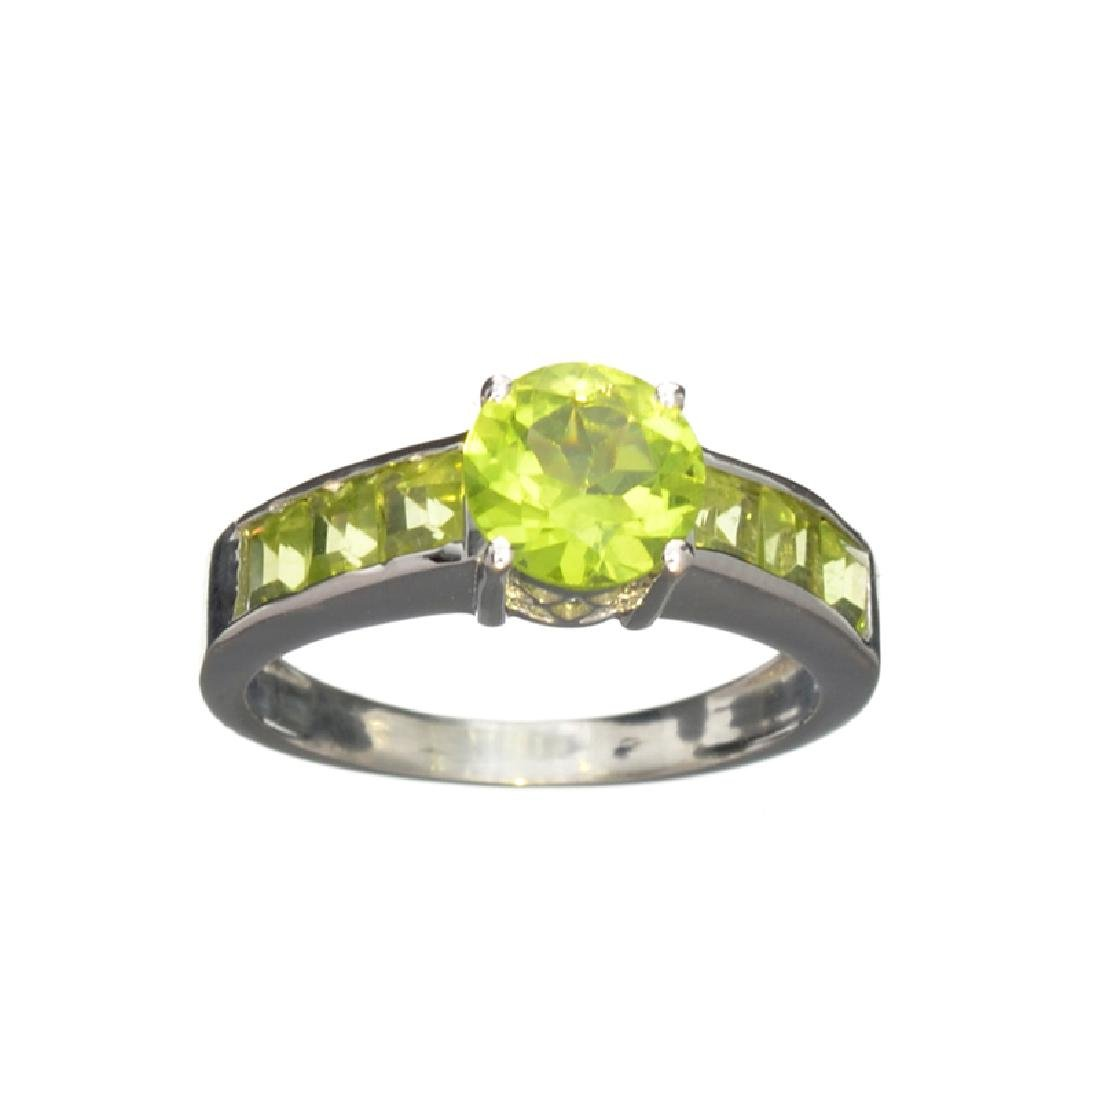 APP: 0.5k Fine Jewelry 2.60CT Peridot And Sterling